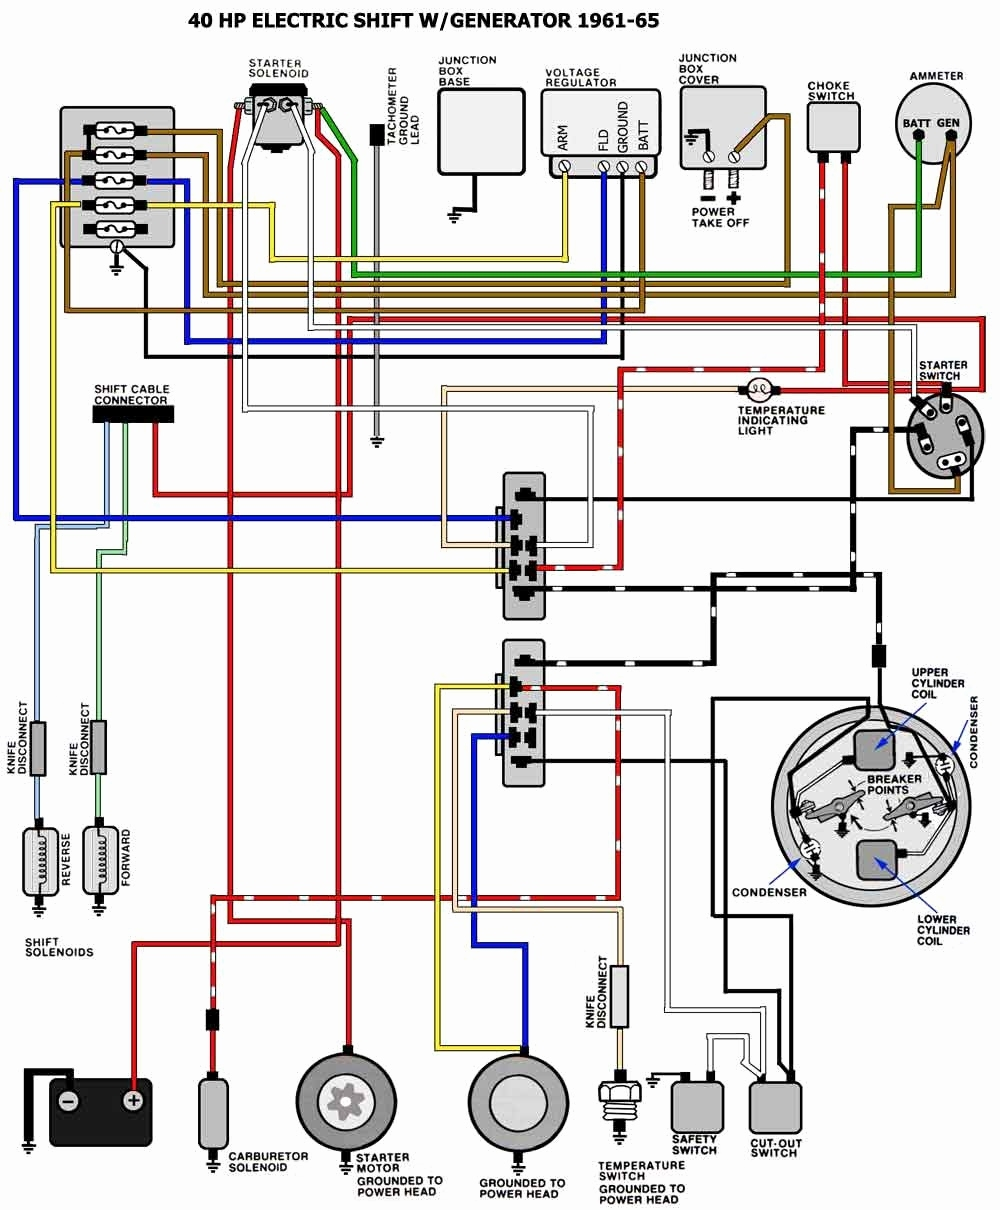 medium resolution of yamaha outboard wiring diagram pdf 40 hp mercury outboard wiring diagram moreover johnson outboard johnson